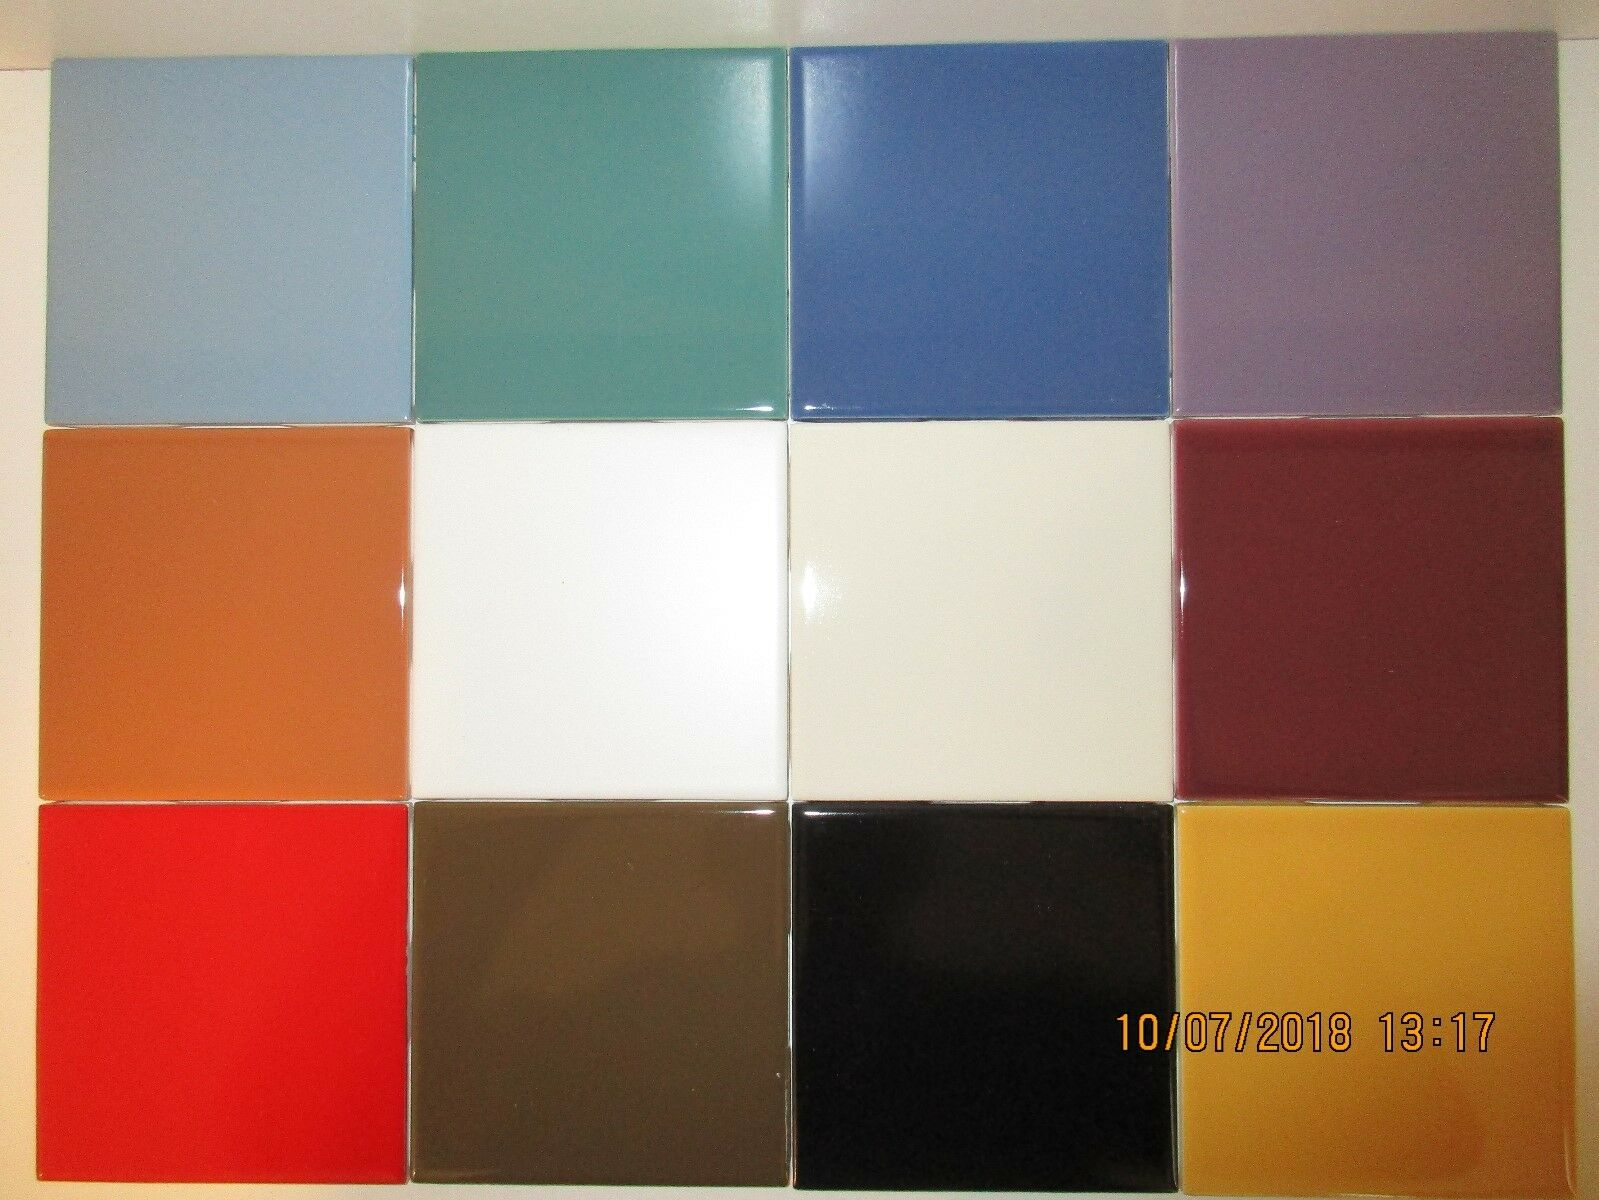 Florida Ceramic Wall Tile 4 3 8  x 4 3 8  x 1 4  - 1 each of 12 Different colors